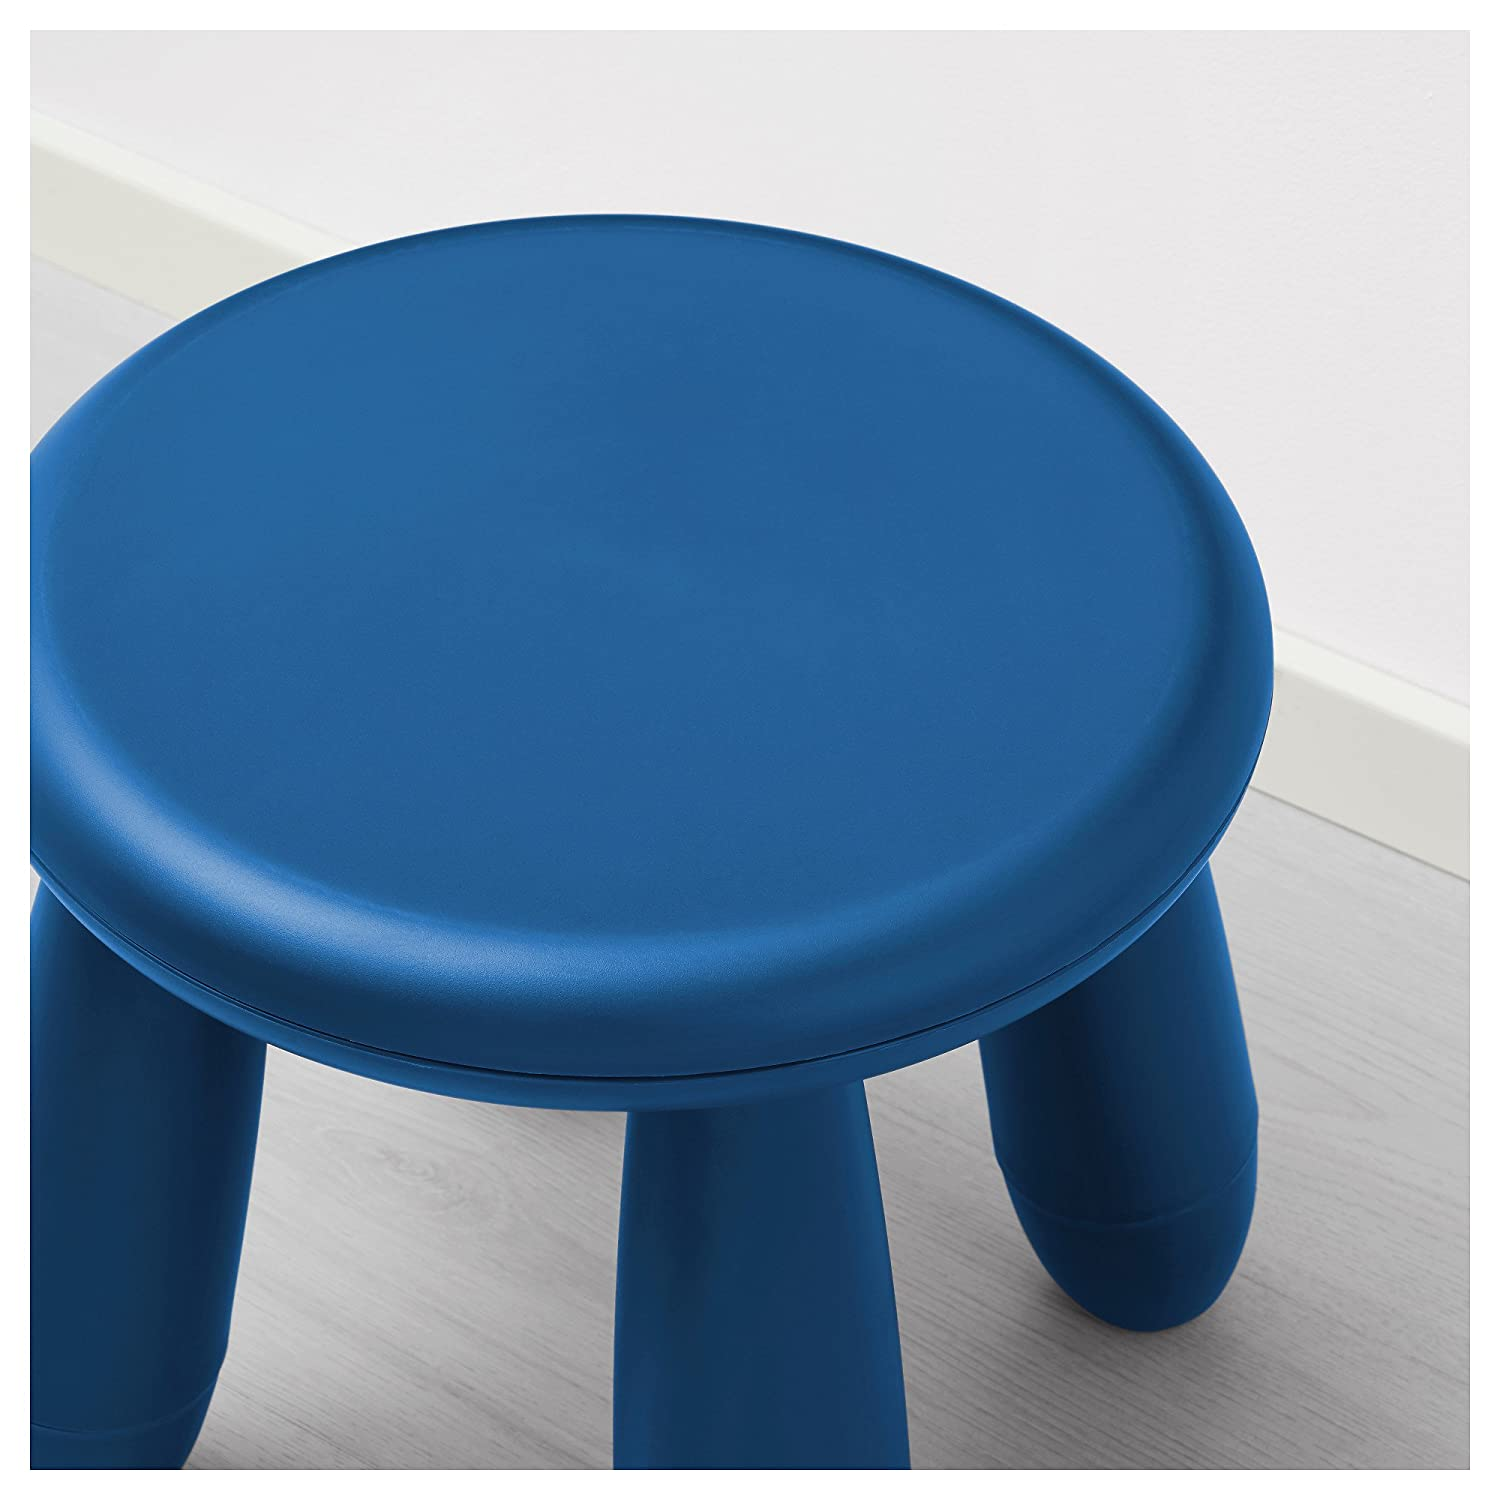 Amazon.com: IKEA Mammut Childrens Blue Stool (Blue, 1): Kitchen & Dining